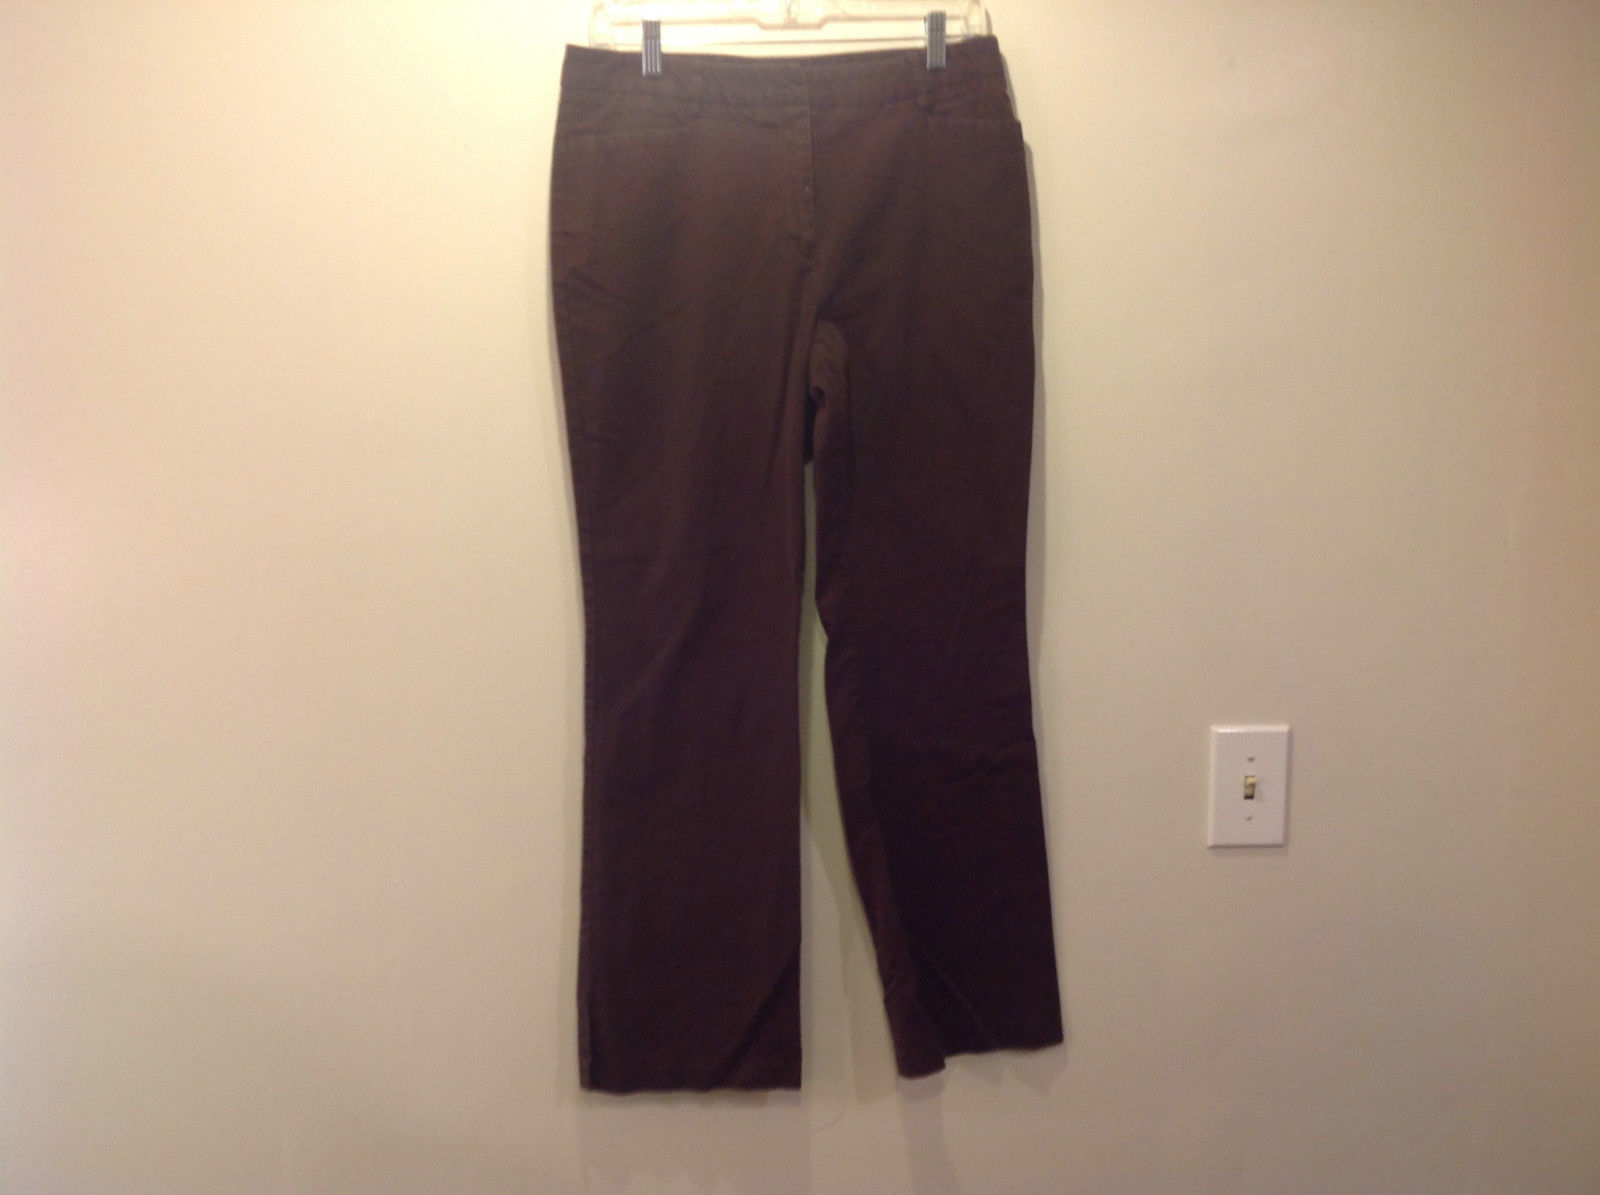 Brown New York and Company Casual Pants Size 10 Good Condition 2 Front Pockets